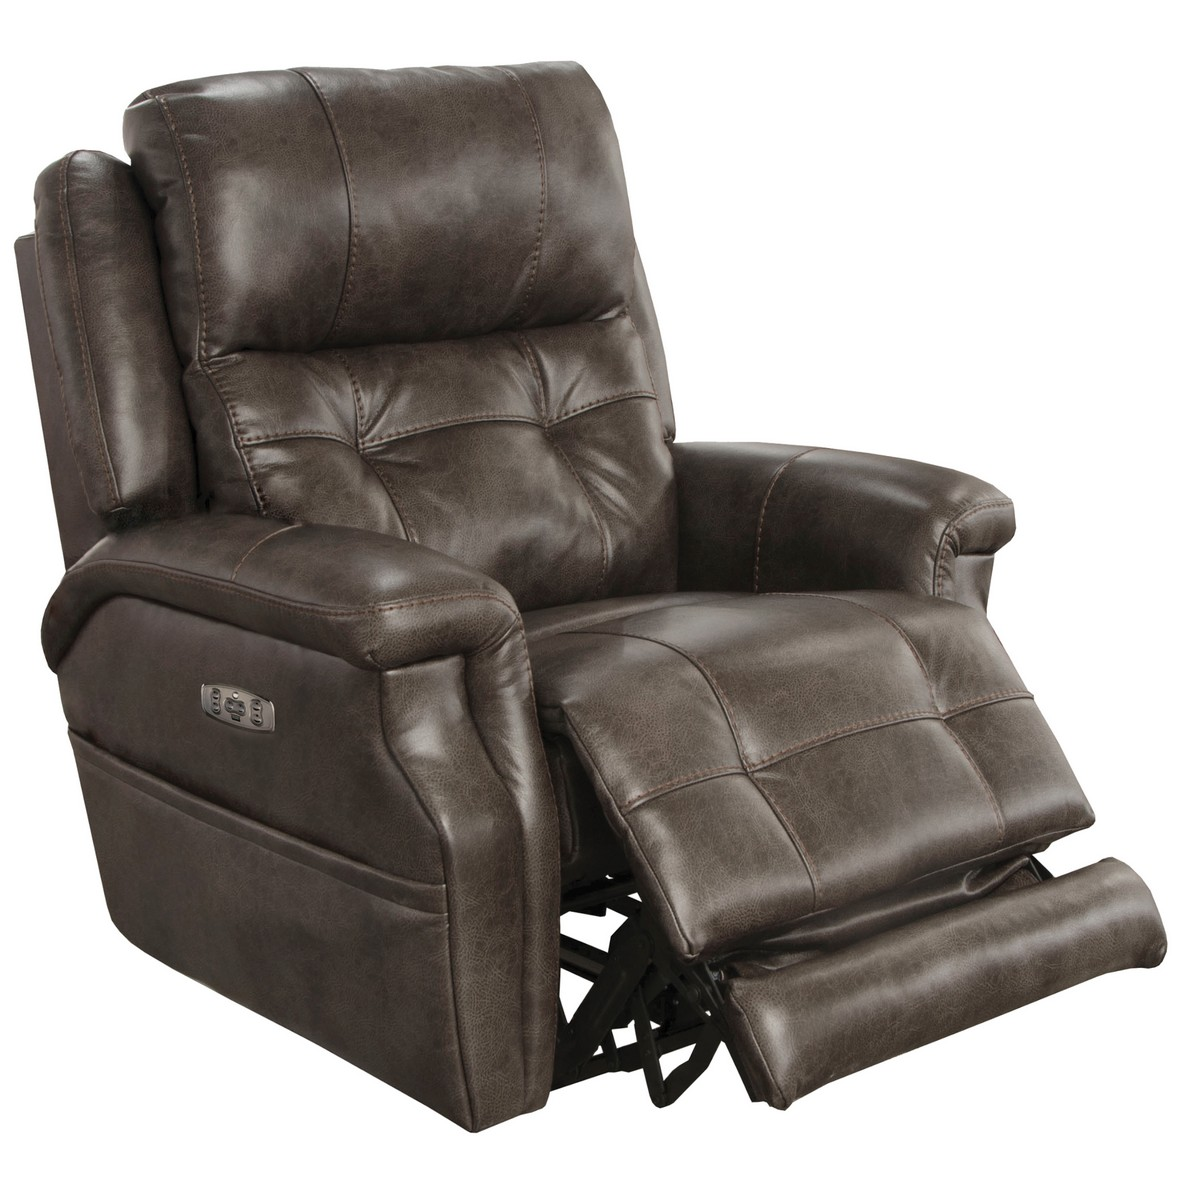 Catnapper Chair Catnapper Kepley Power Headrest Power Lay Flat Recliner